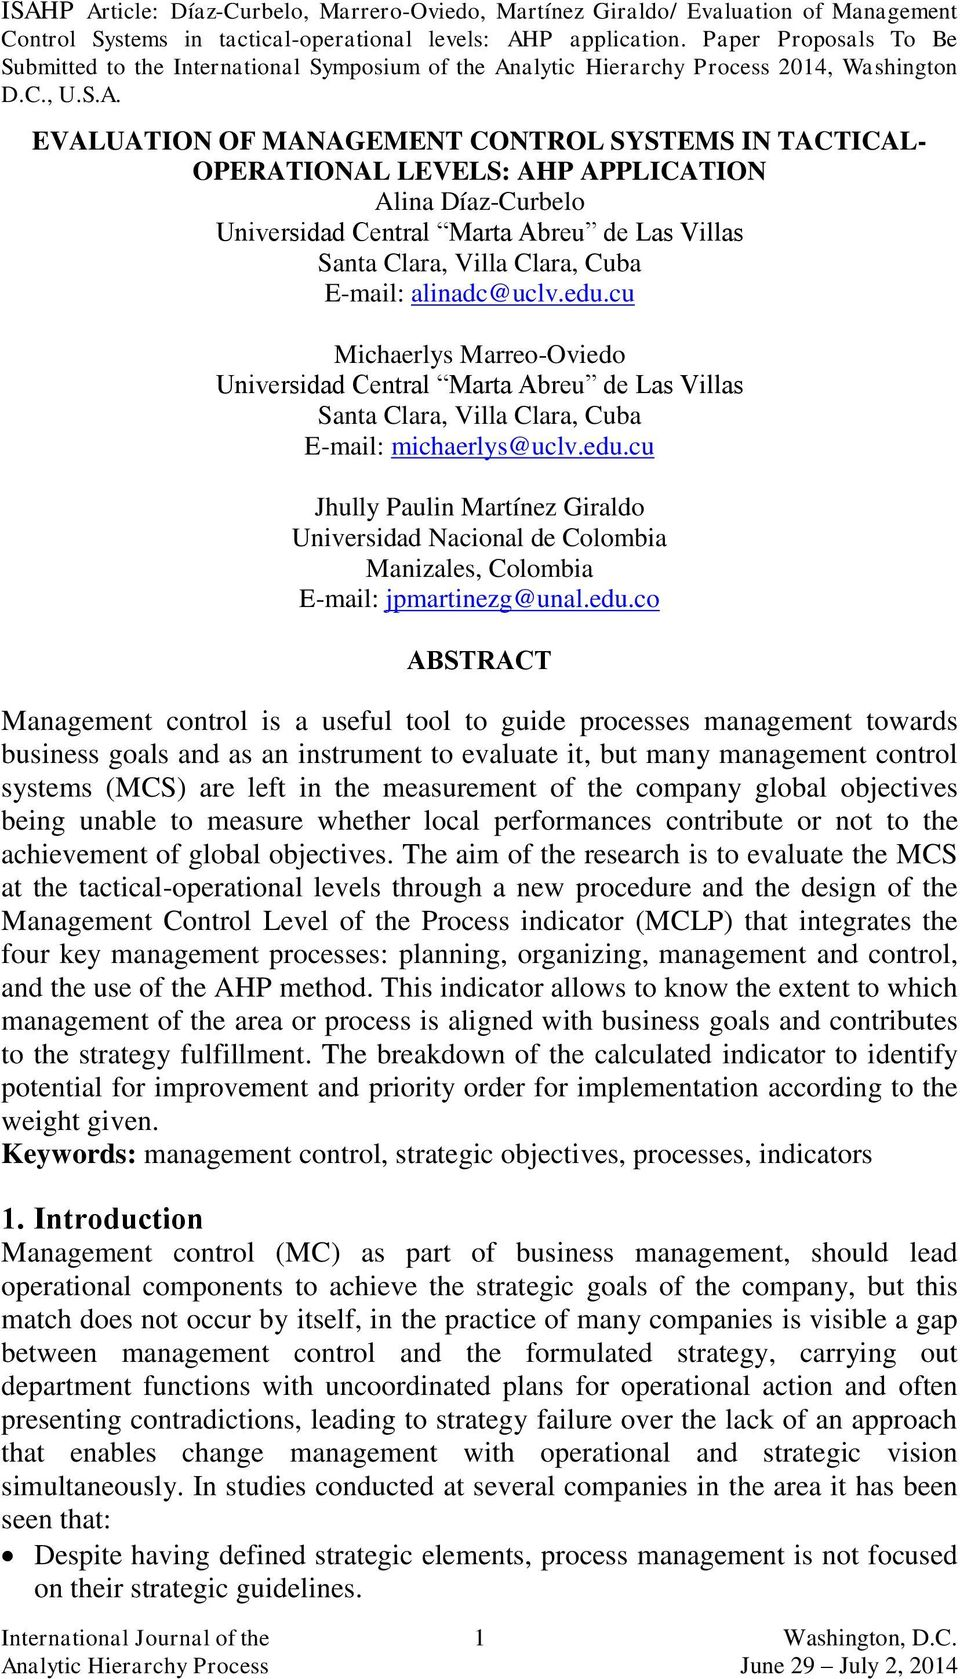 edu.co ABSTRACT Management control is a useful tool to guide processes management towards business goals and as an instrument to evaluate it, but many management control systems (MCS) are left in the